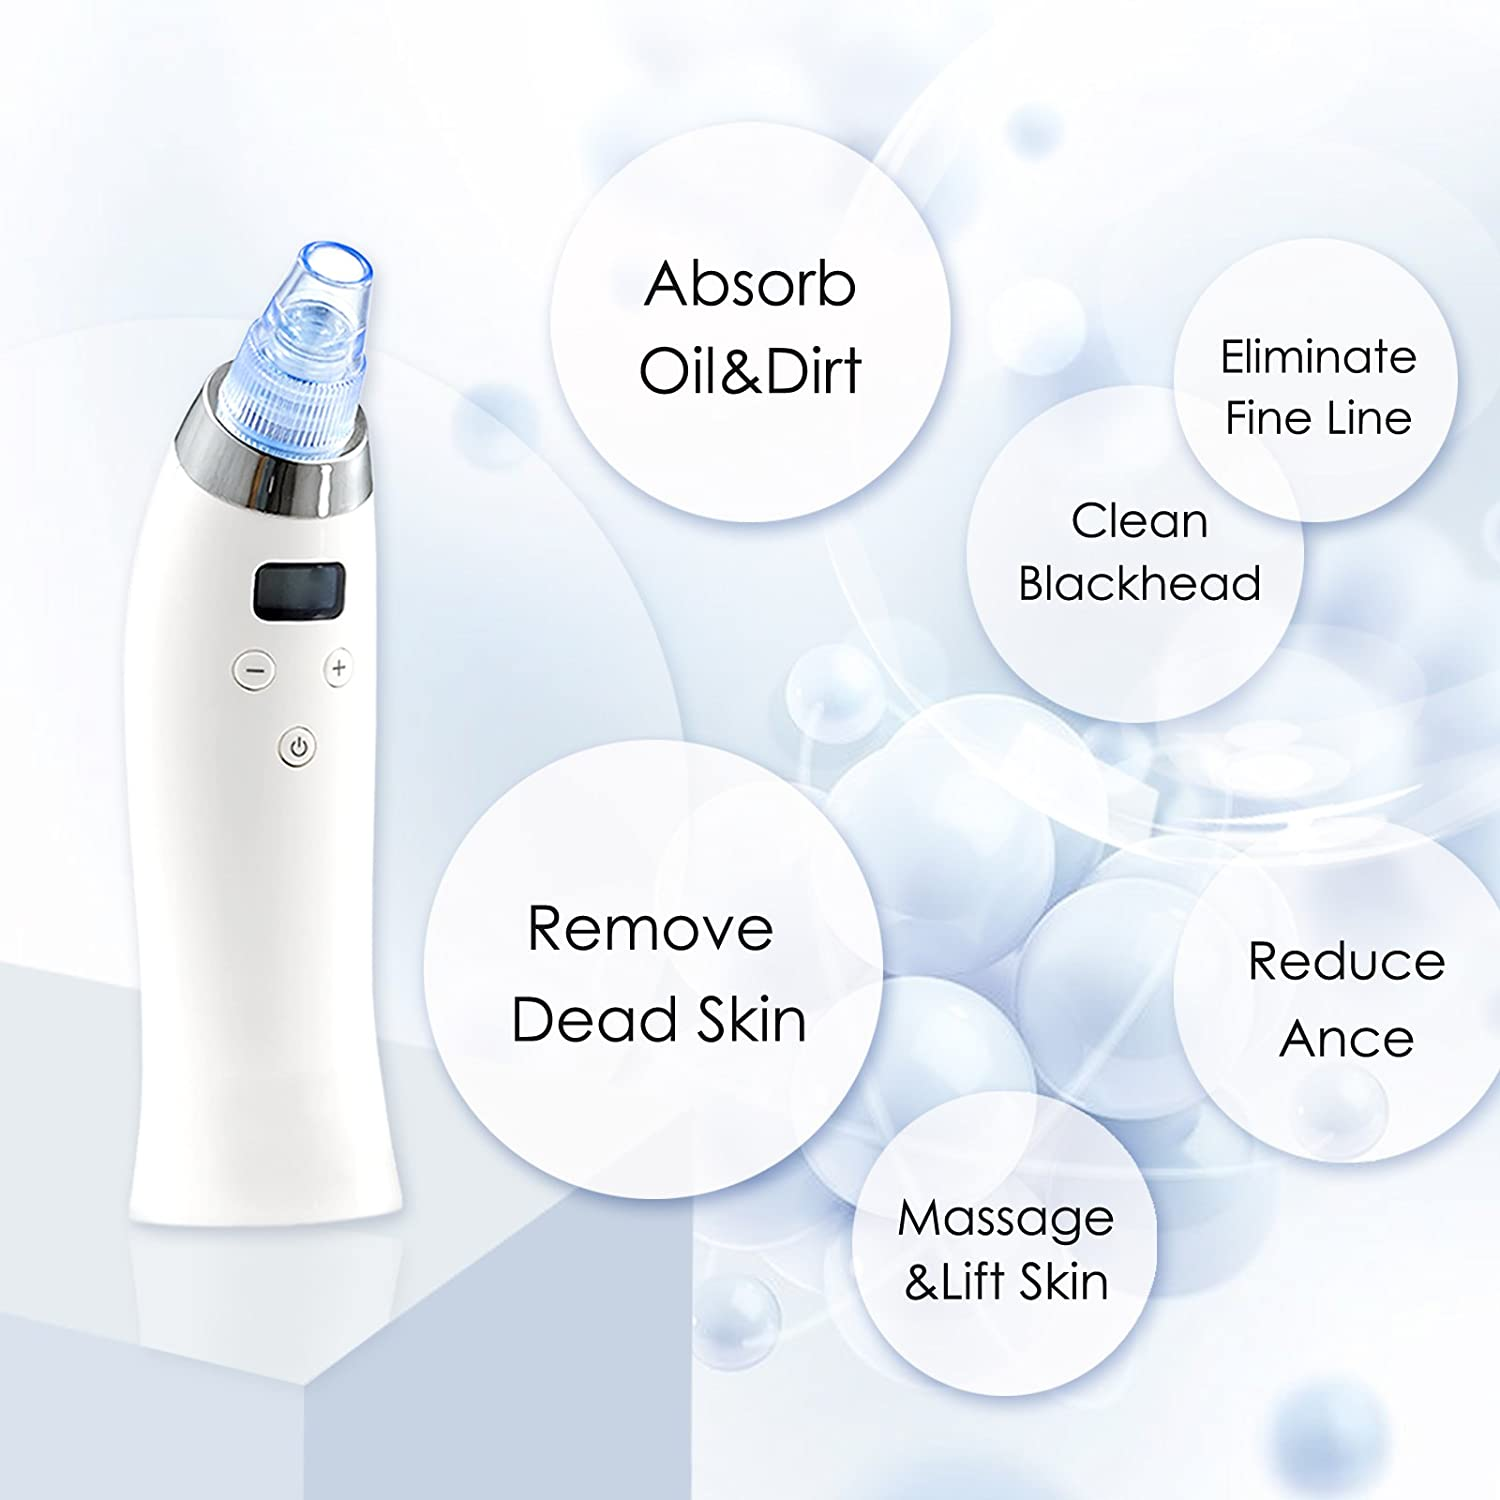 Blackhead Remover Vacuum Facial Pore Cleanser Electric Acne Comedone Extractor Kit USB Rechargeable Blackhead Sucker Tool with LED Display 4 Multi-Functional Suction Probes for Nose Skin